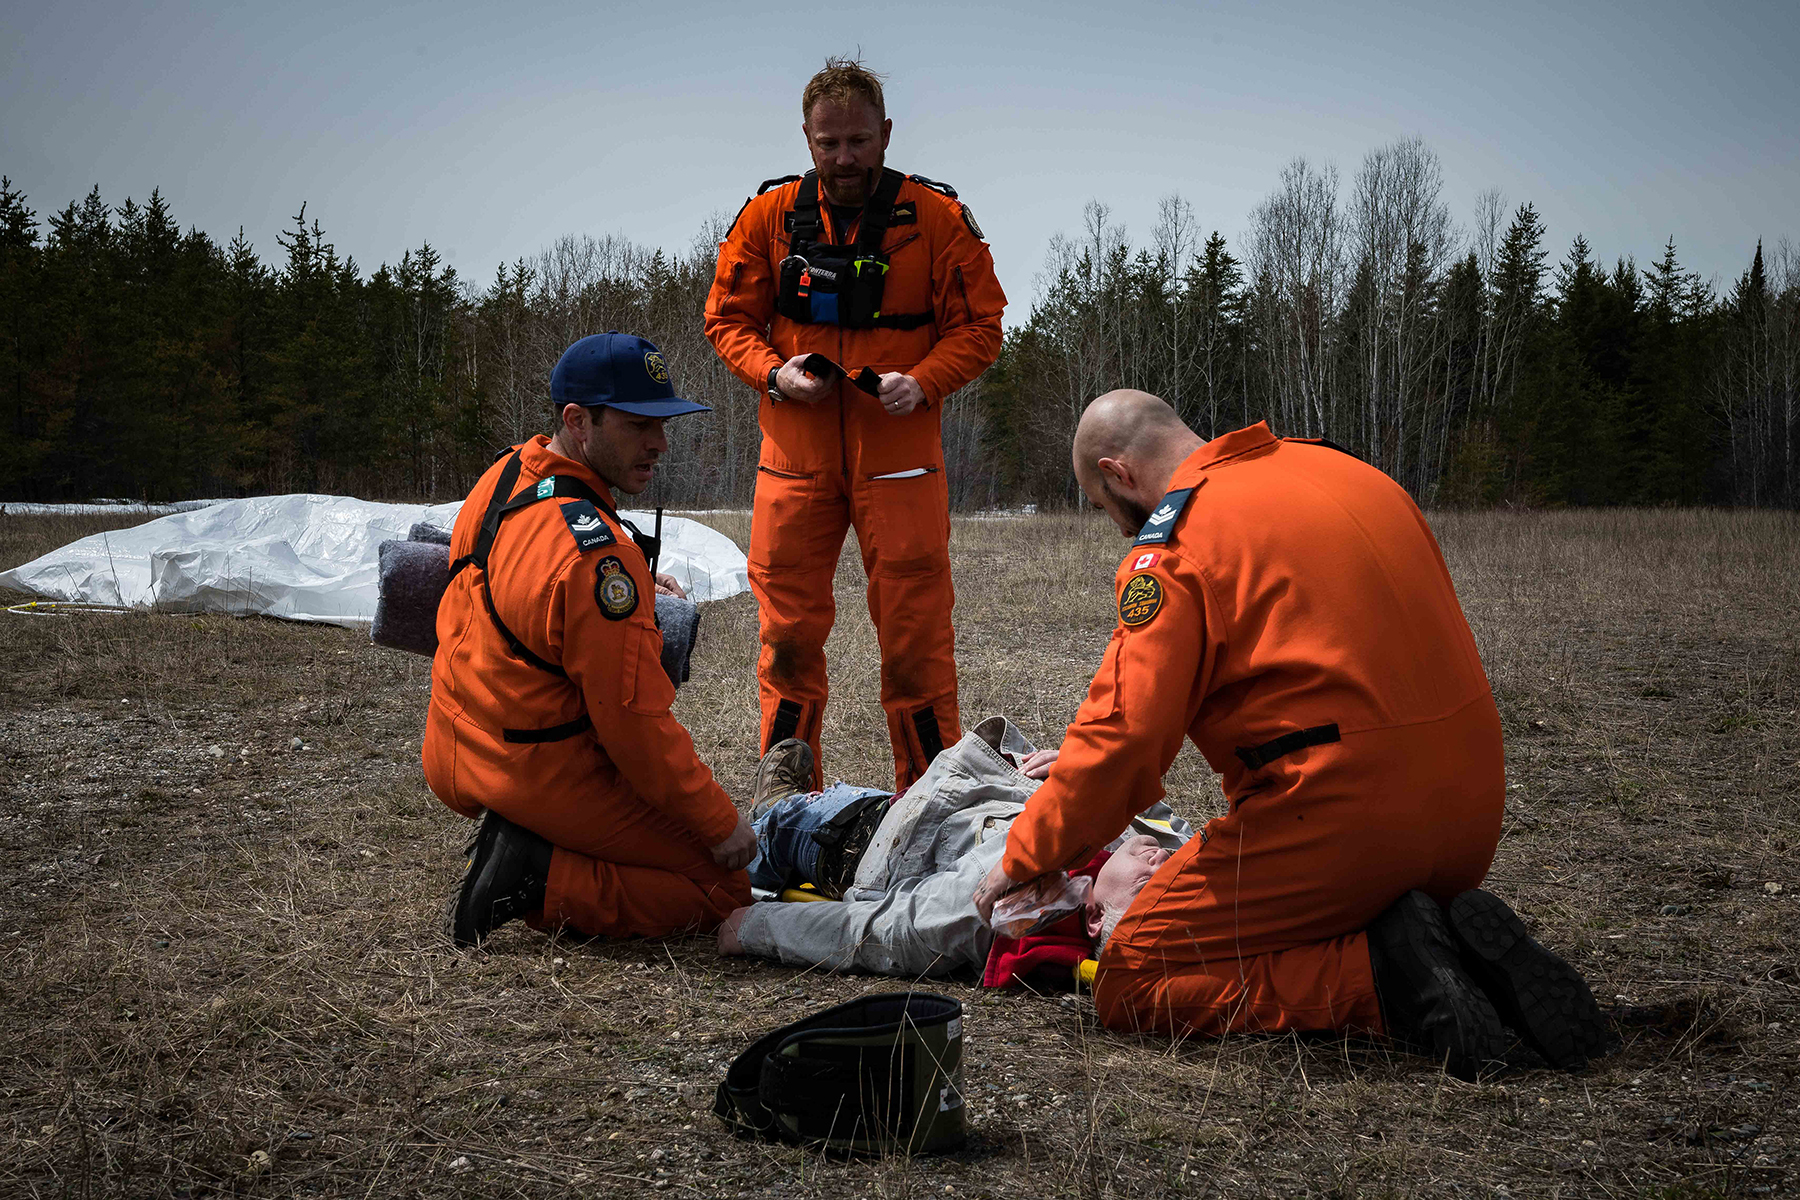 During Chinthex 2019 on May 8, 2019, near Thunder Bay, Ontario, RCAF search and rescue personnel evaluate a simulated casualty. PHOTO: Aviator Tanner Musseau-Seaward, WG2019-0191-018